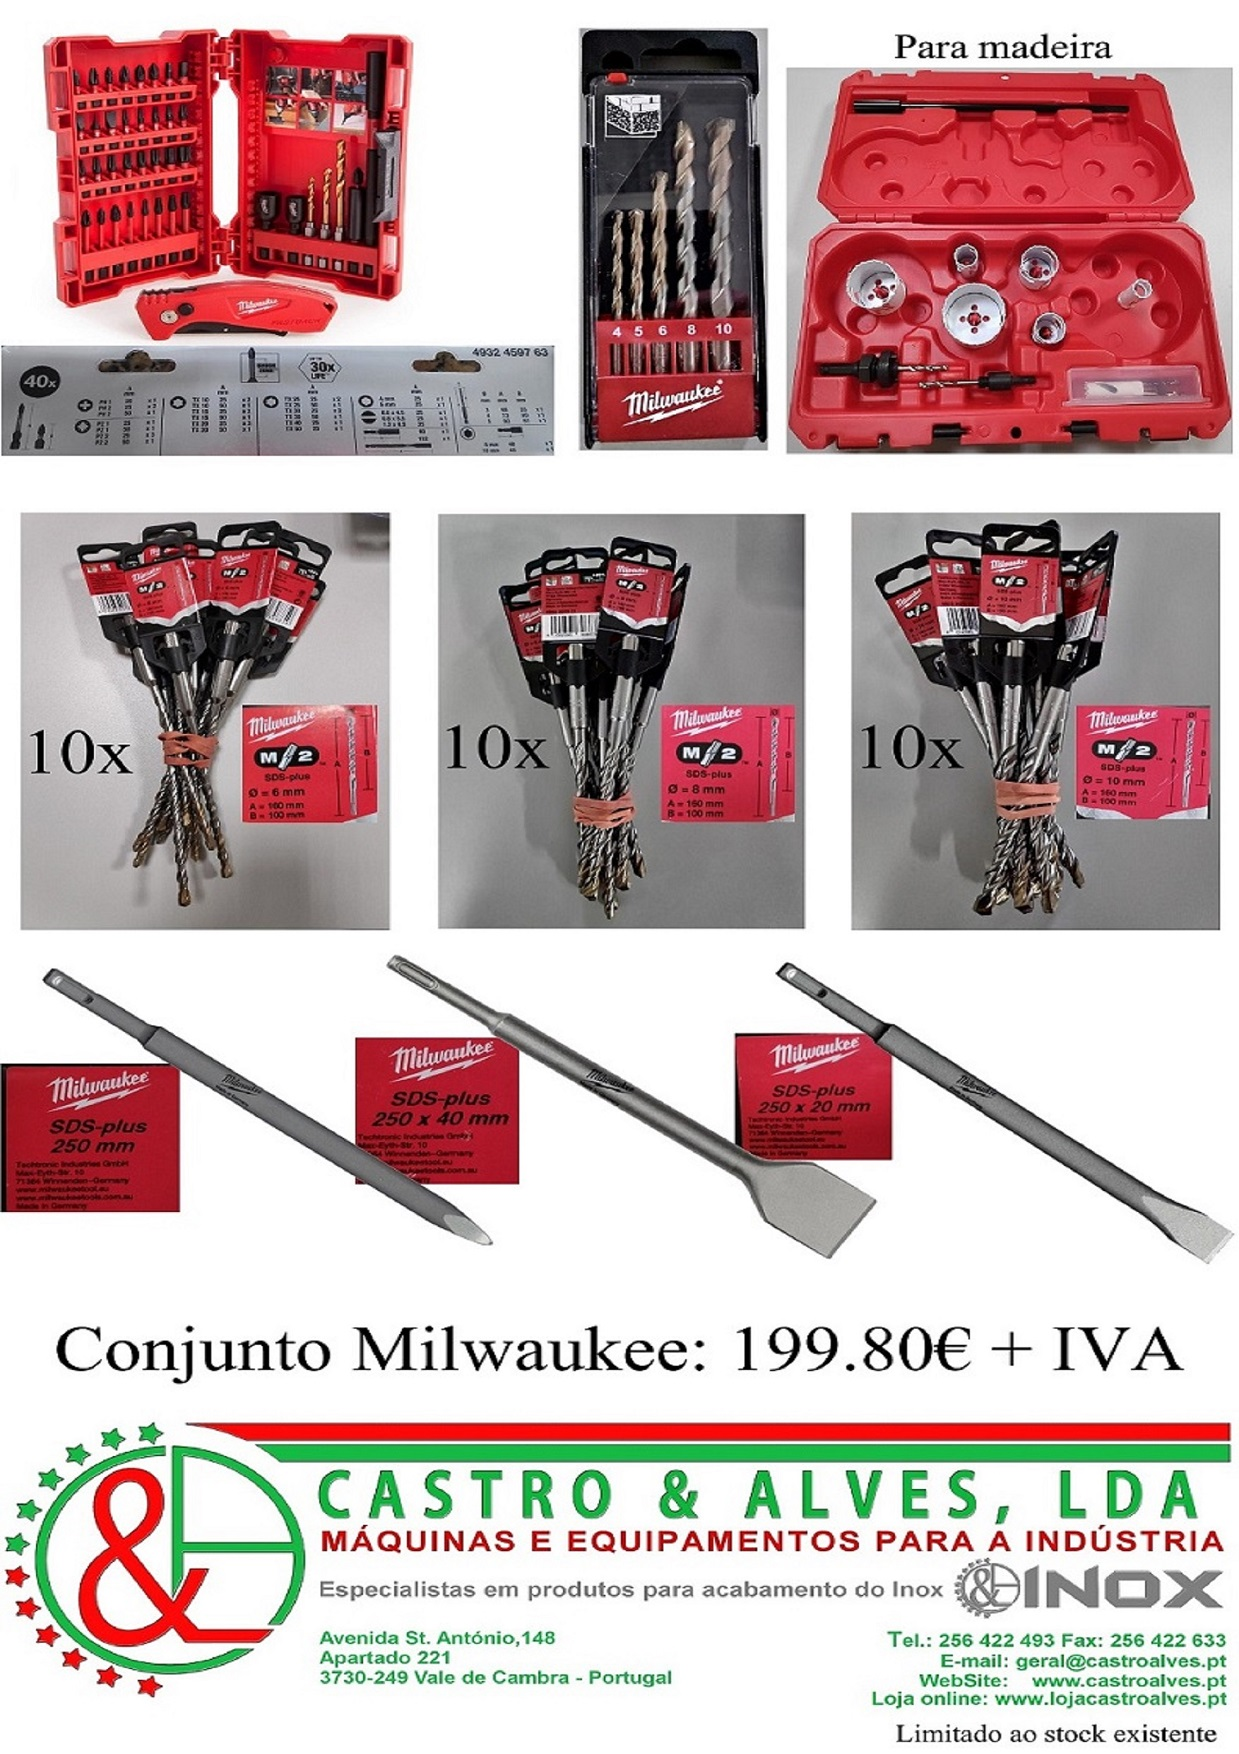 Conjunto Milwaukee